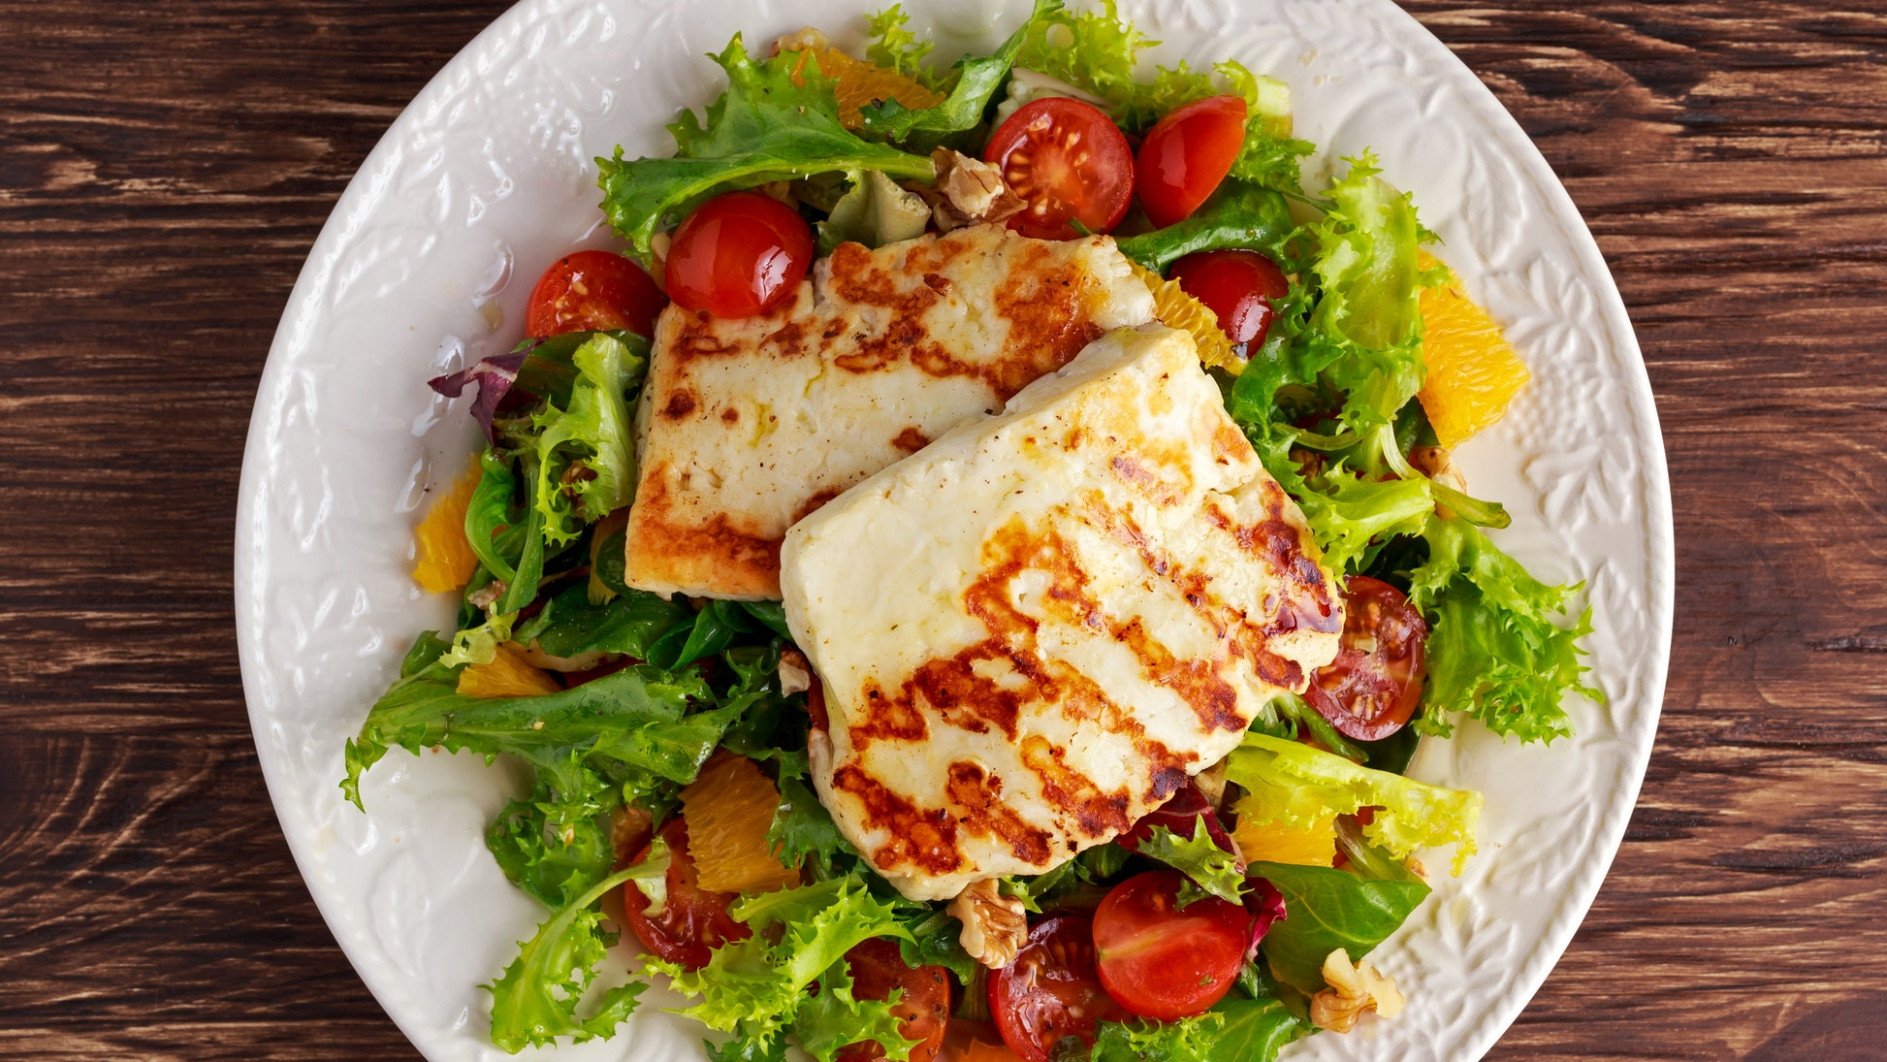 Food & Drink - BT Lifestyle - recipes eating healthy